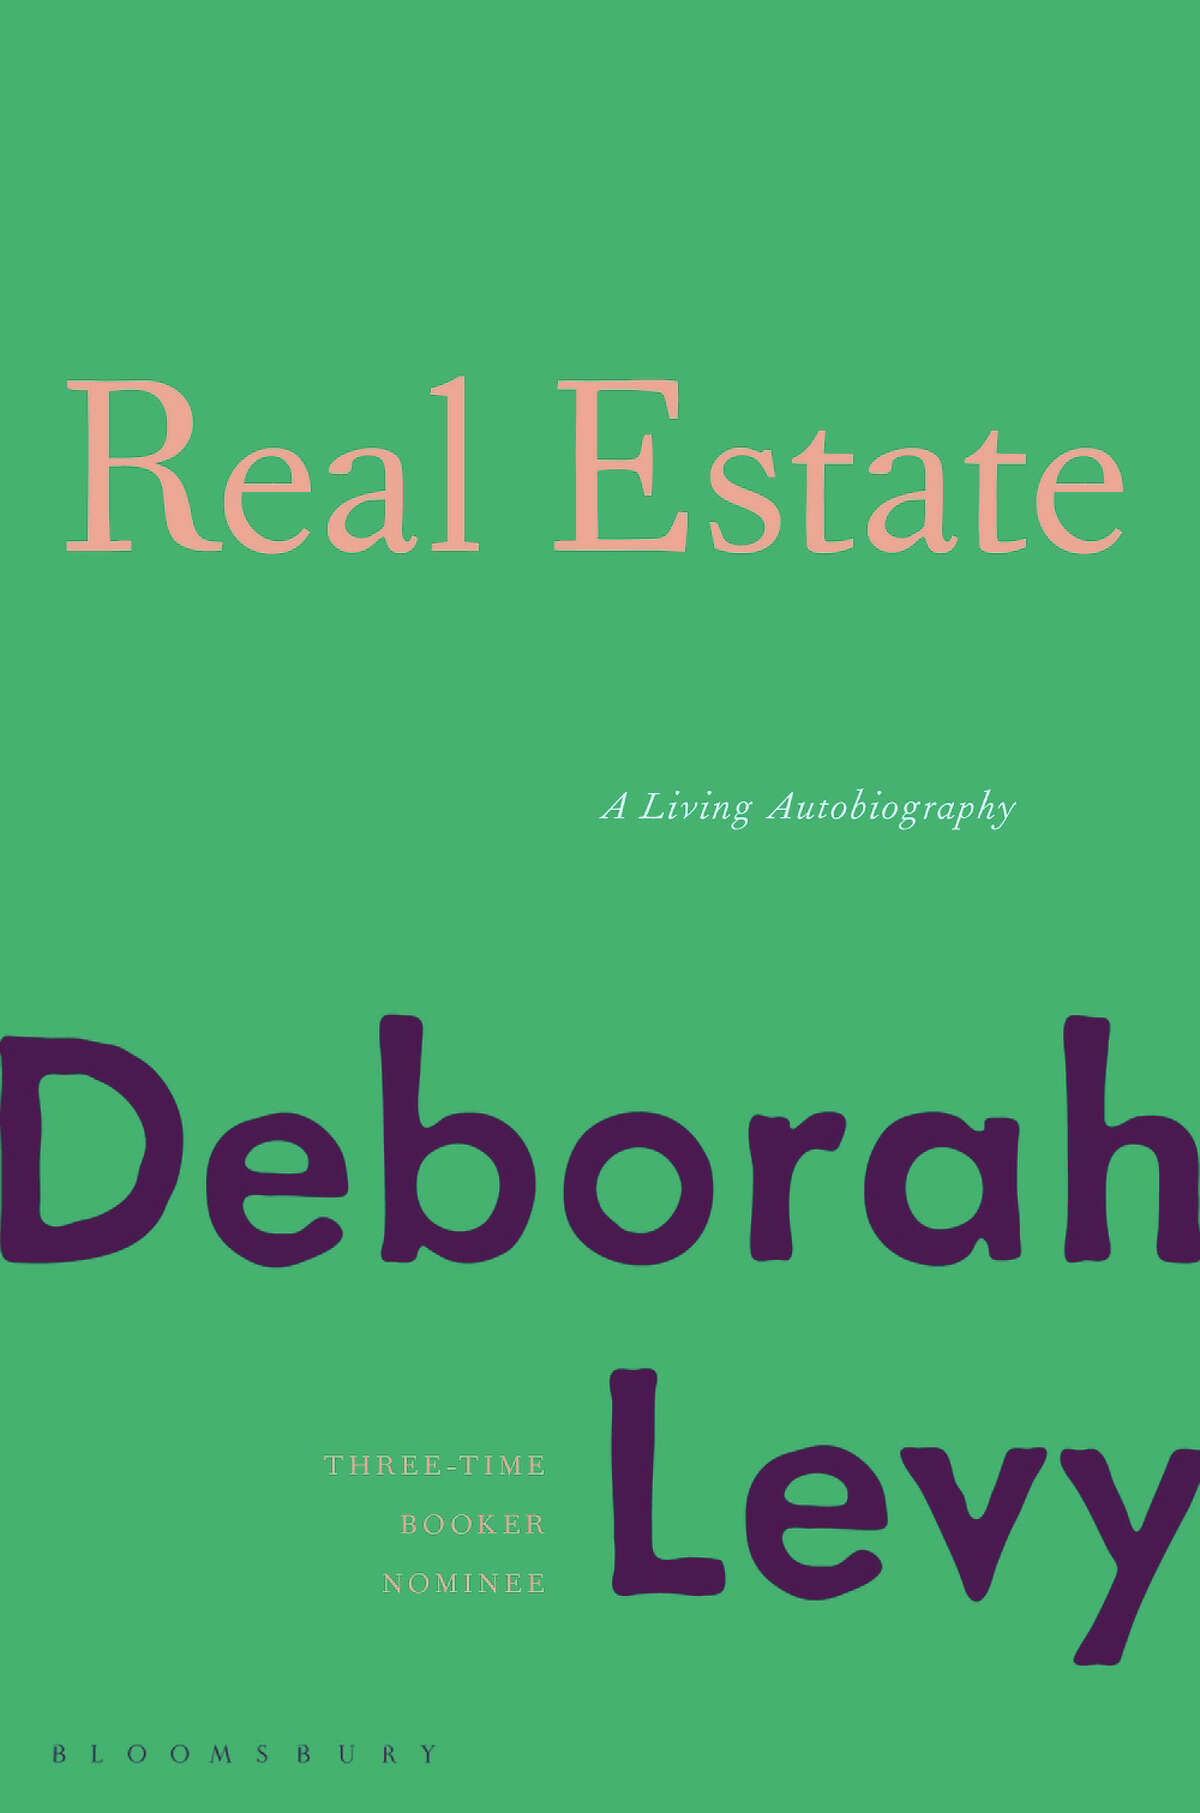 Real Estate: A living autobiography